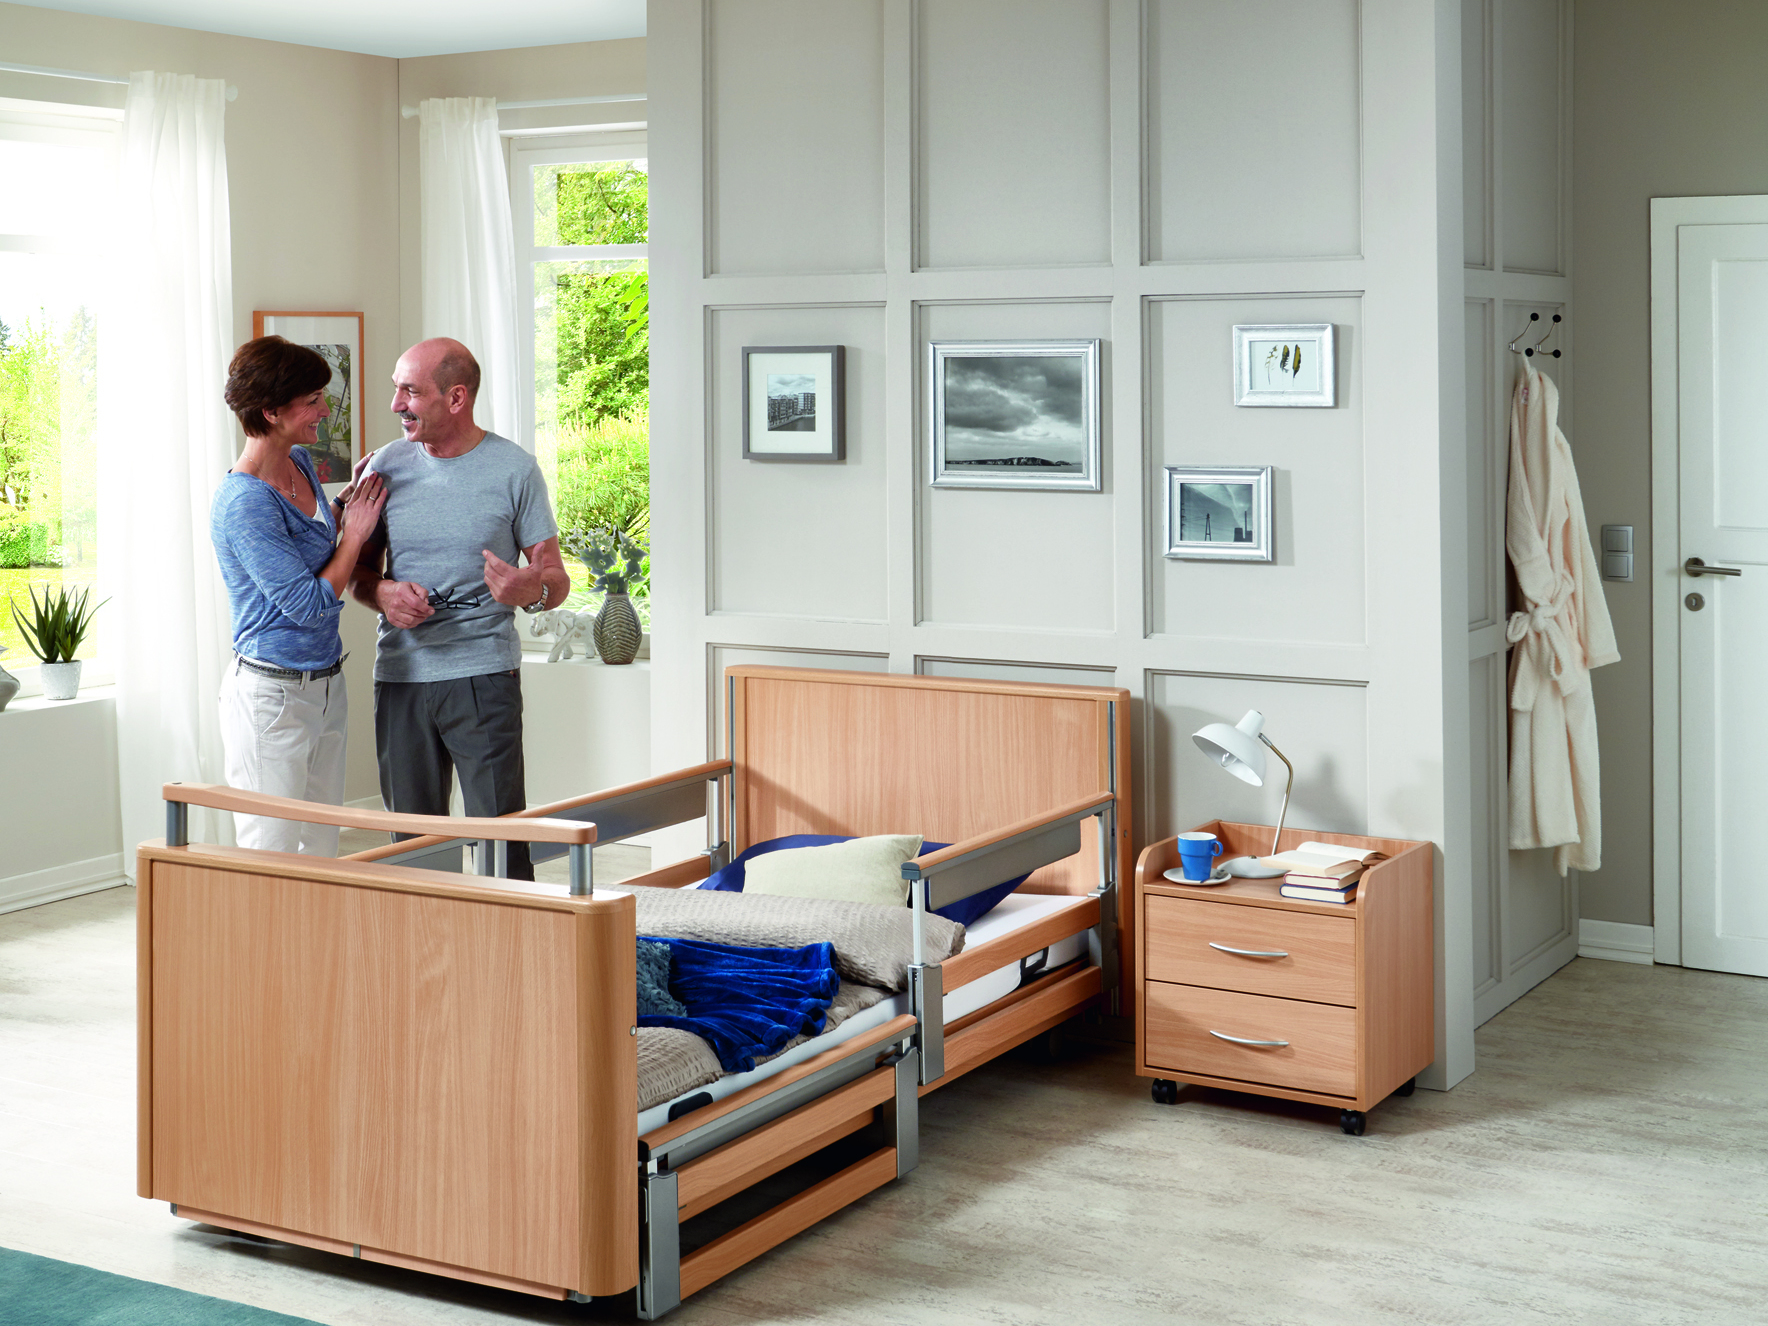 2-stage telescopic safety side (TSG) of the Inovia care bed